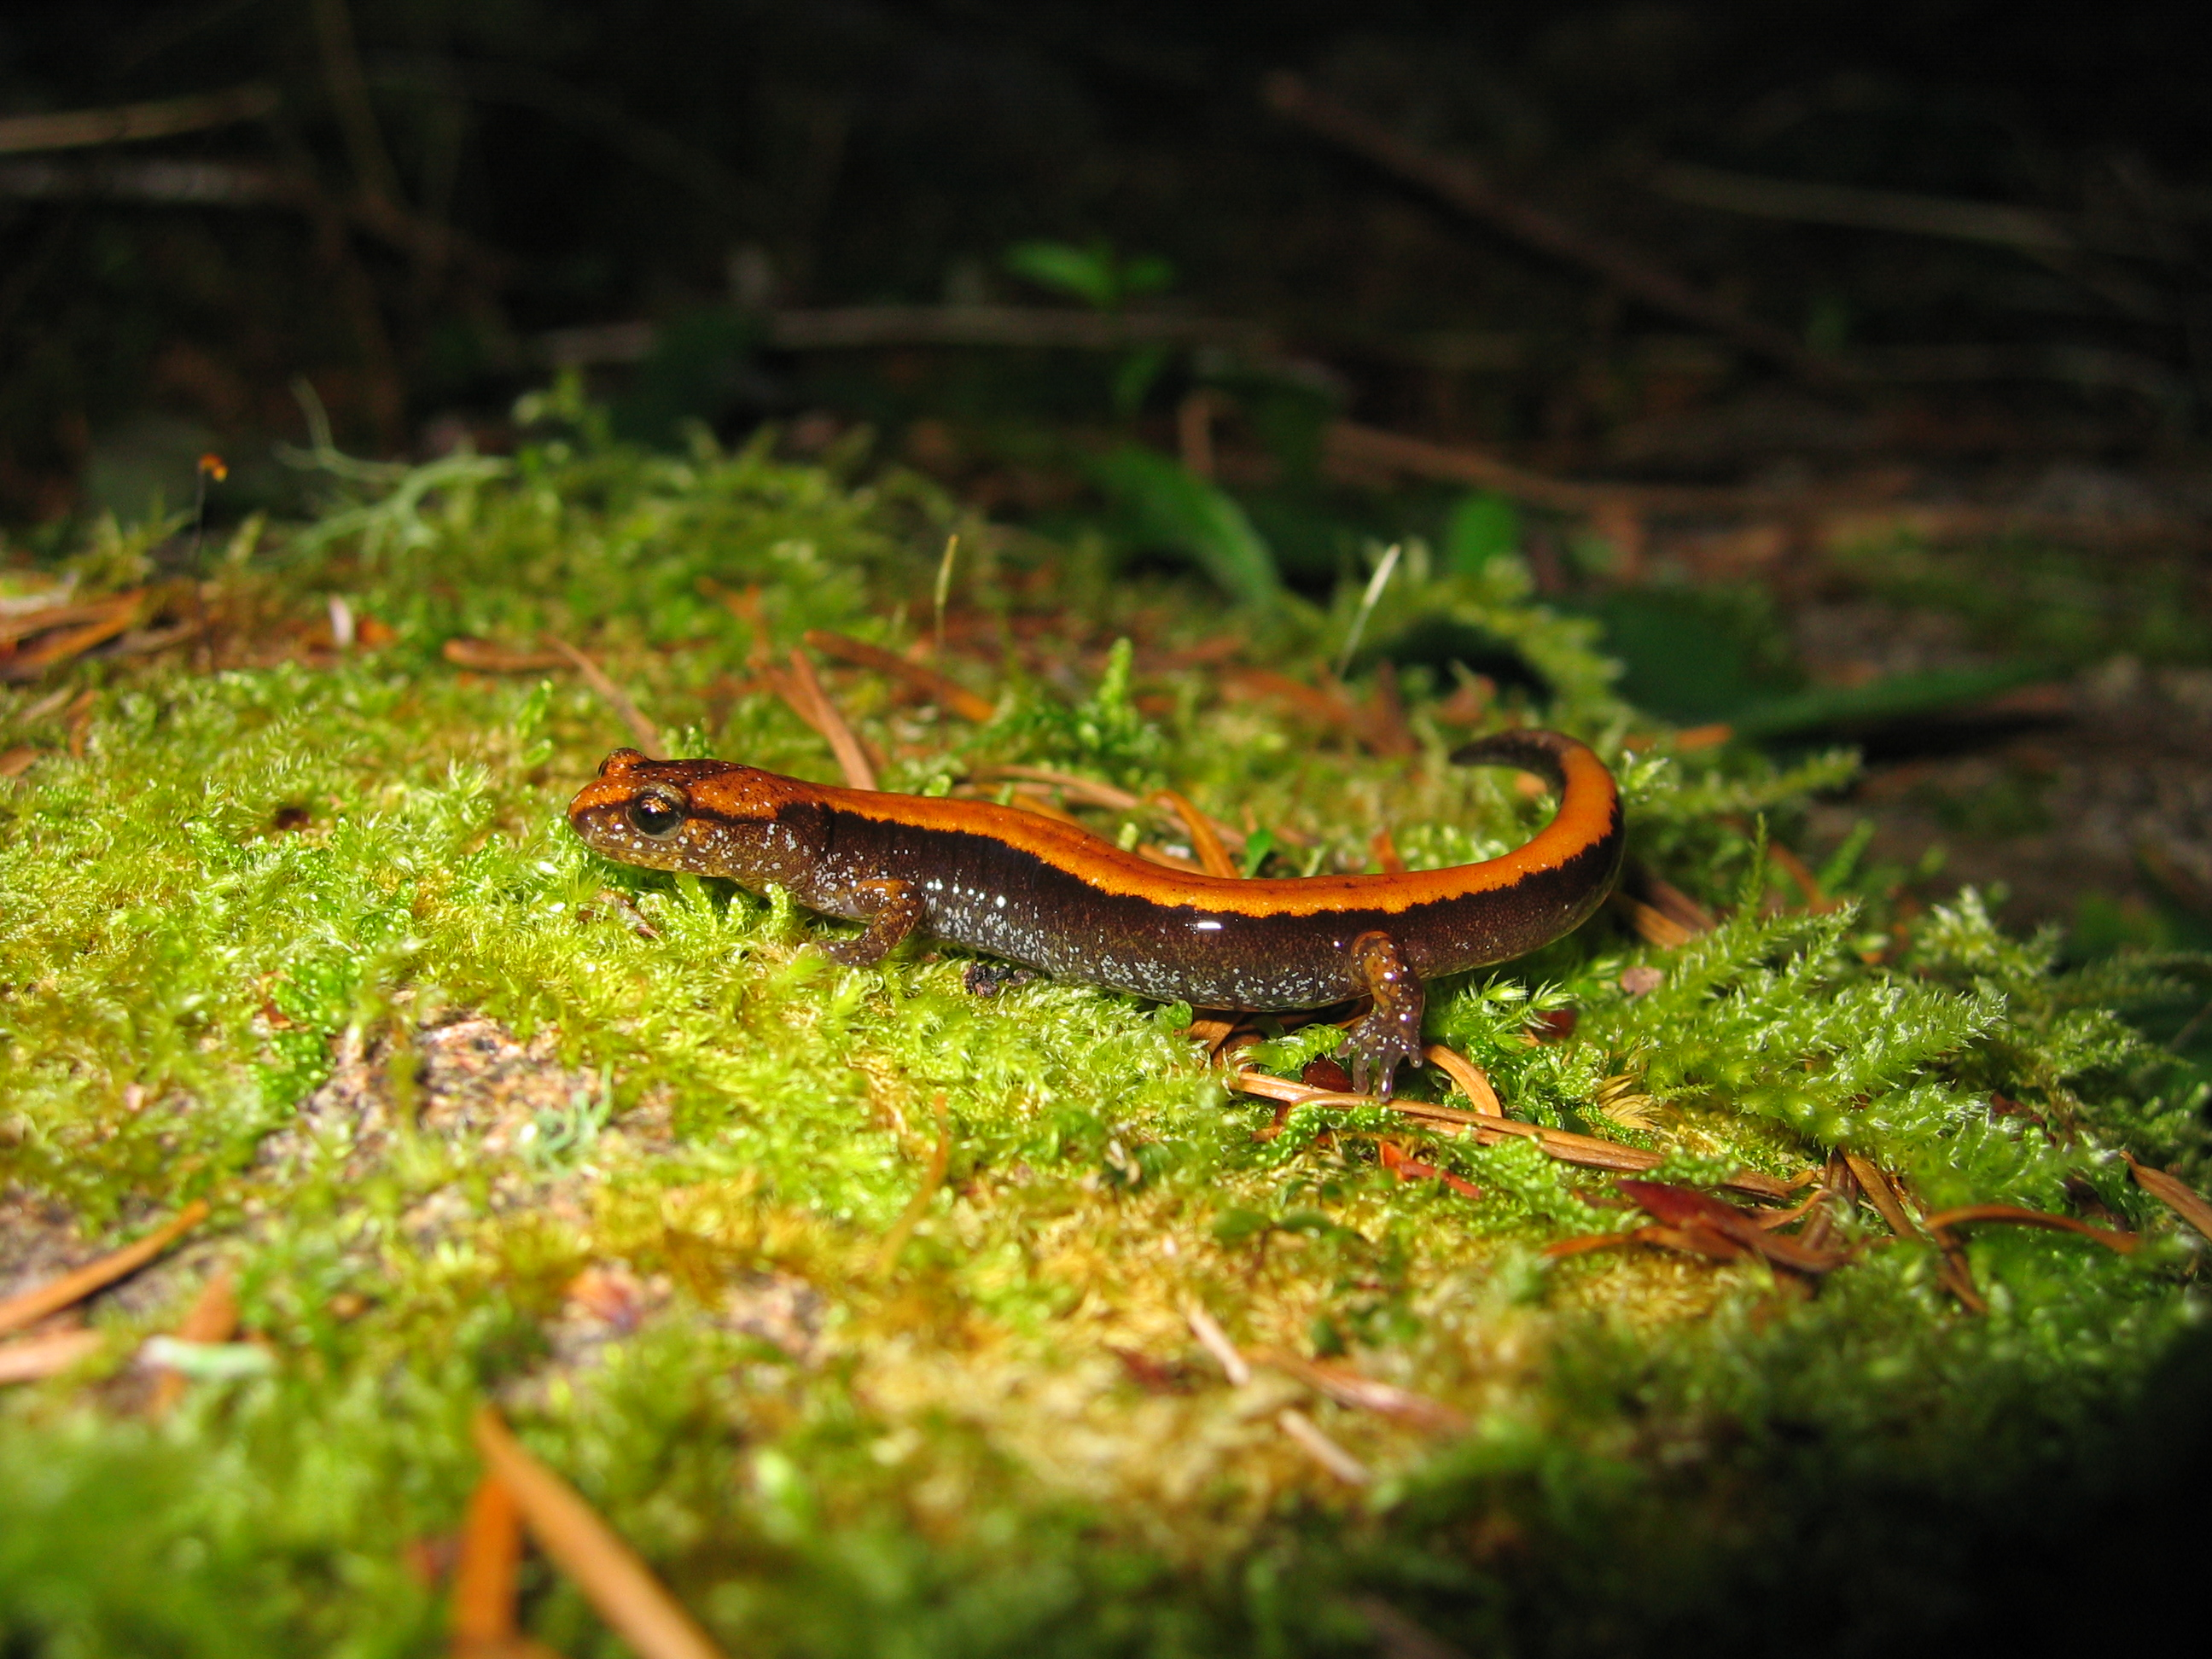 <strong>Source:</strong> USGS FRESC. <strong>Photographer:</strong> Brome McCreary. Plethodon vehiculum adult.